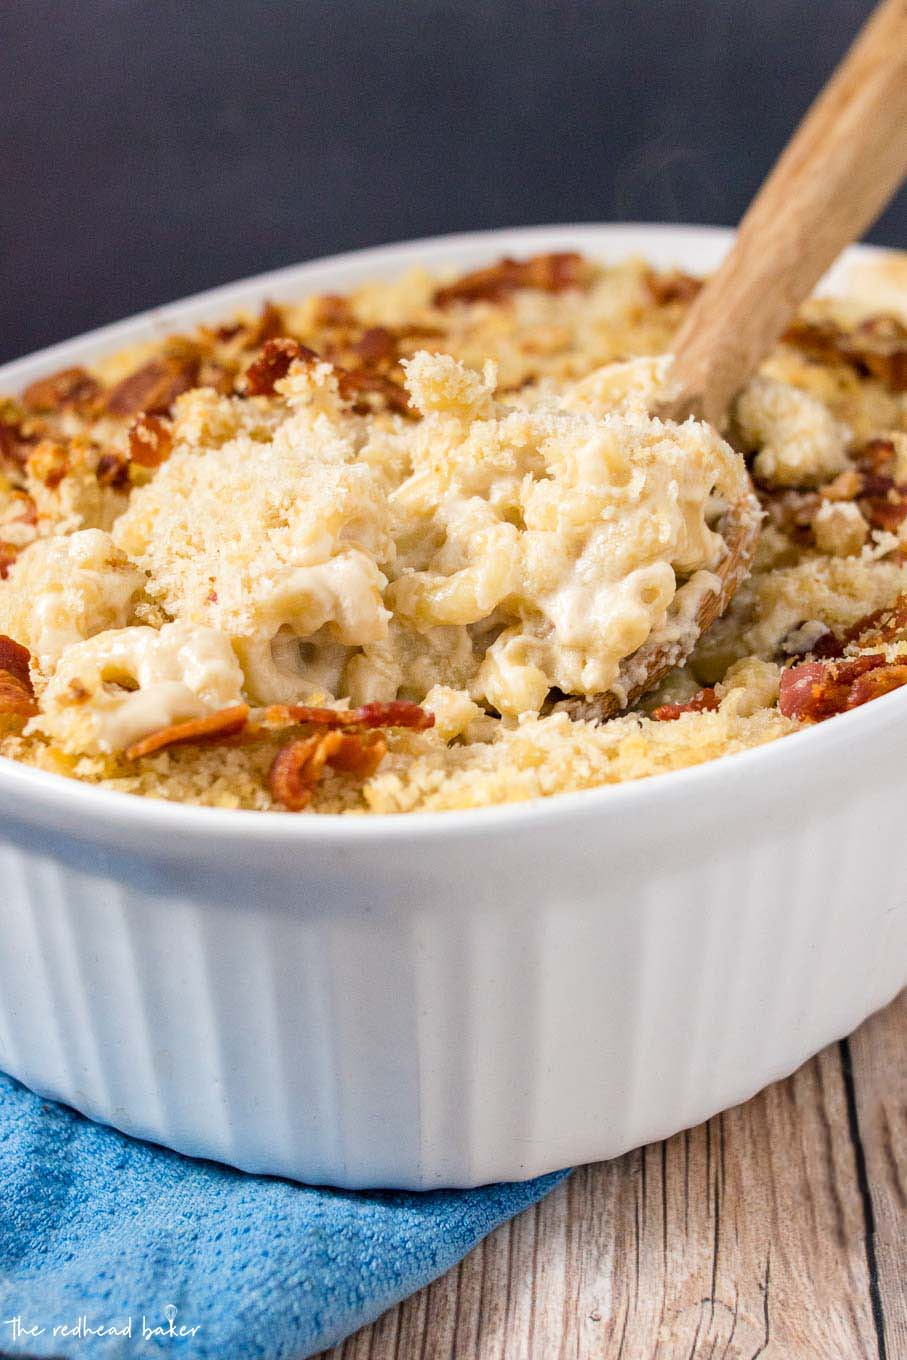 A wooden spoon digging into a casserole dish of Irish mac and cheese.